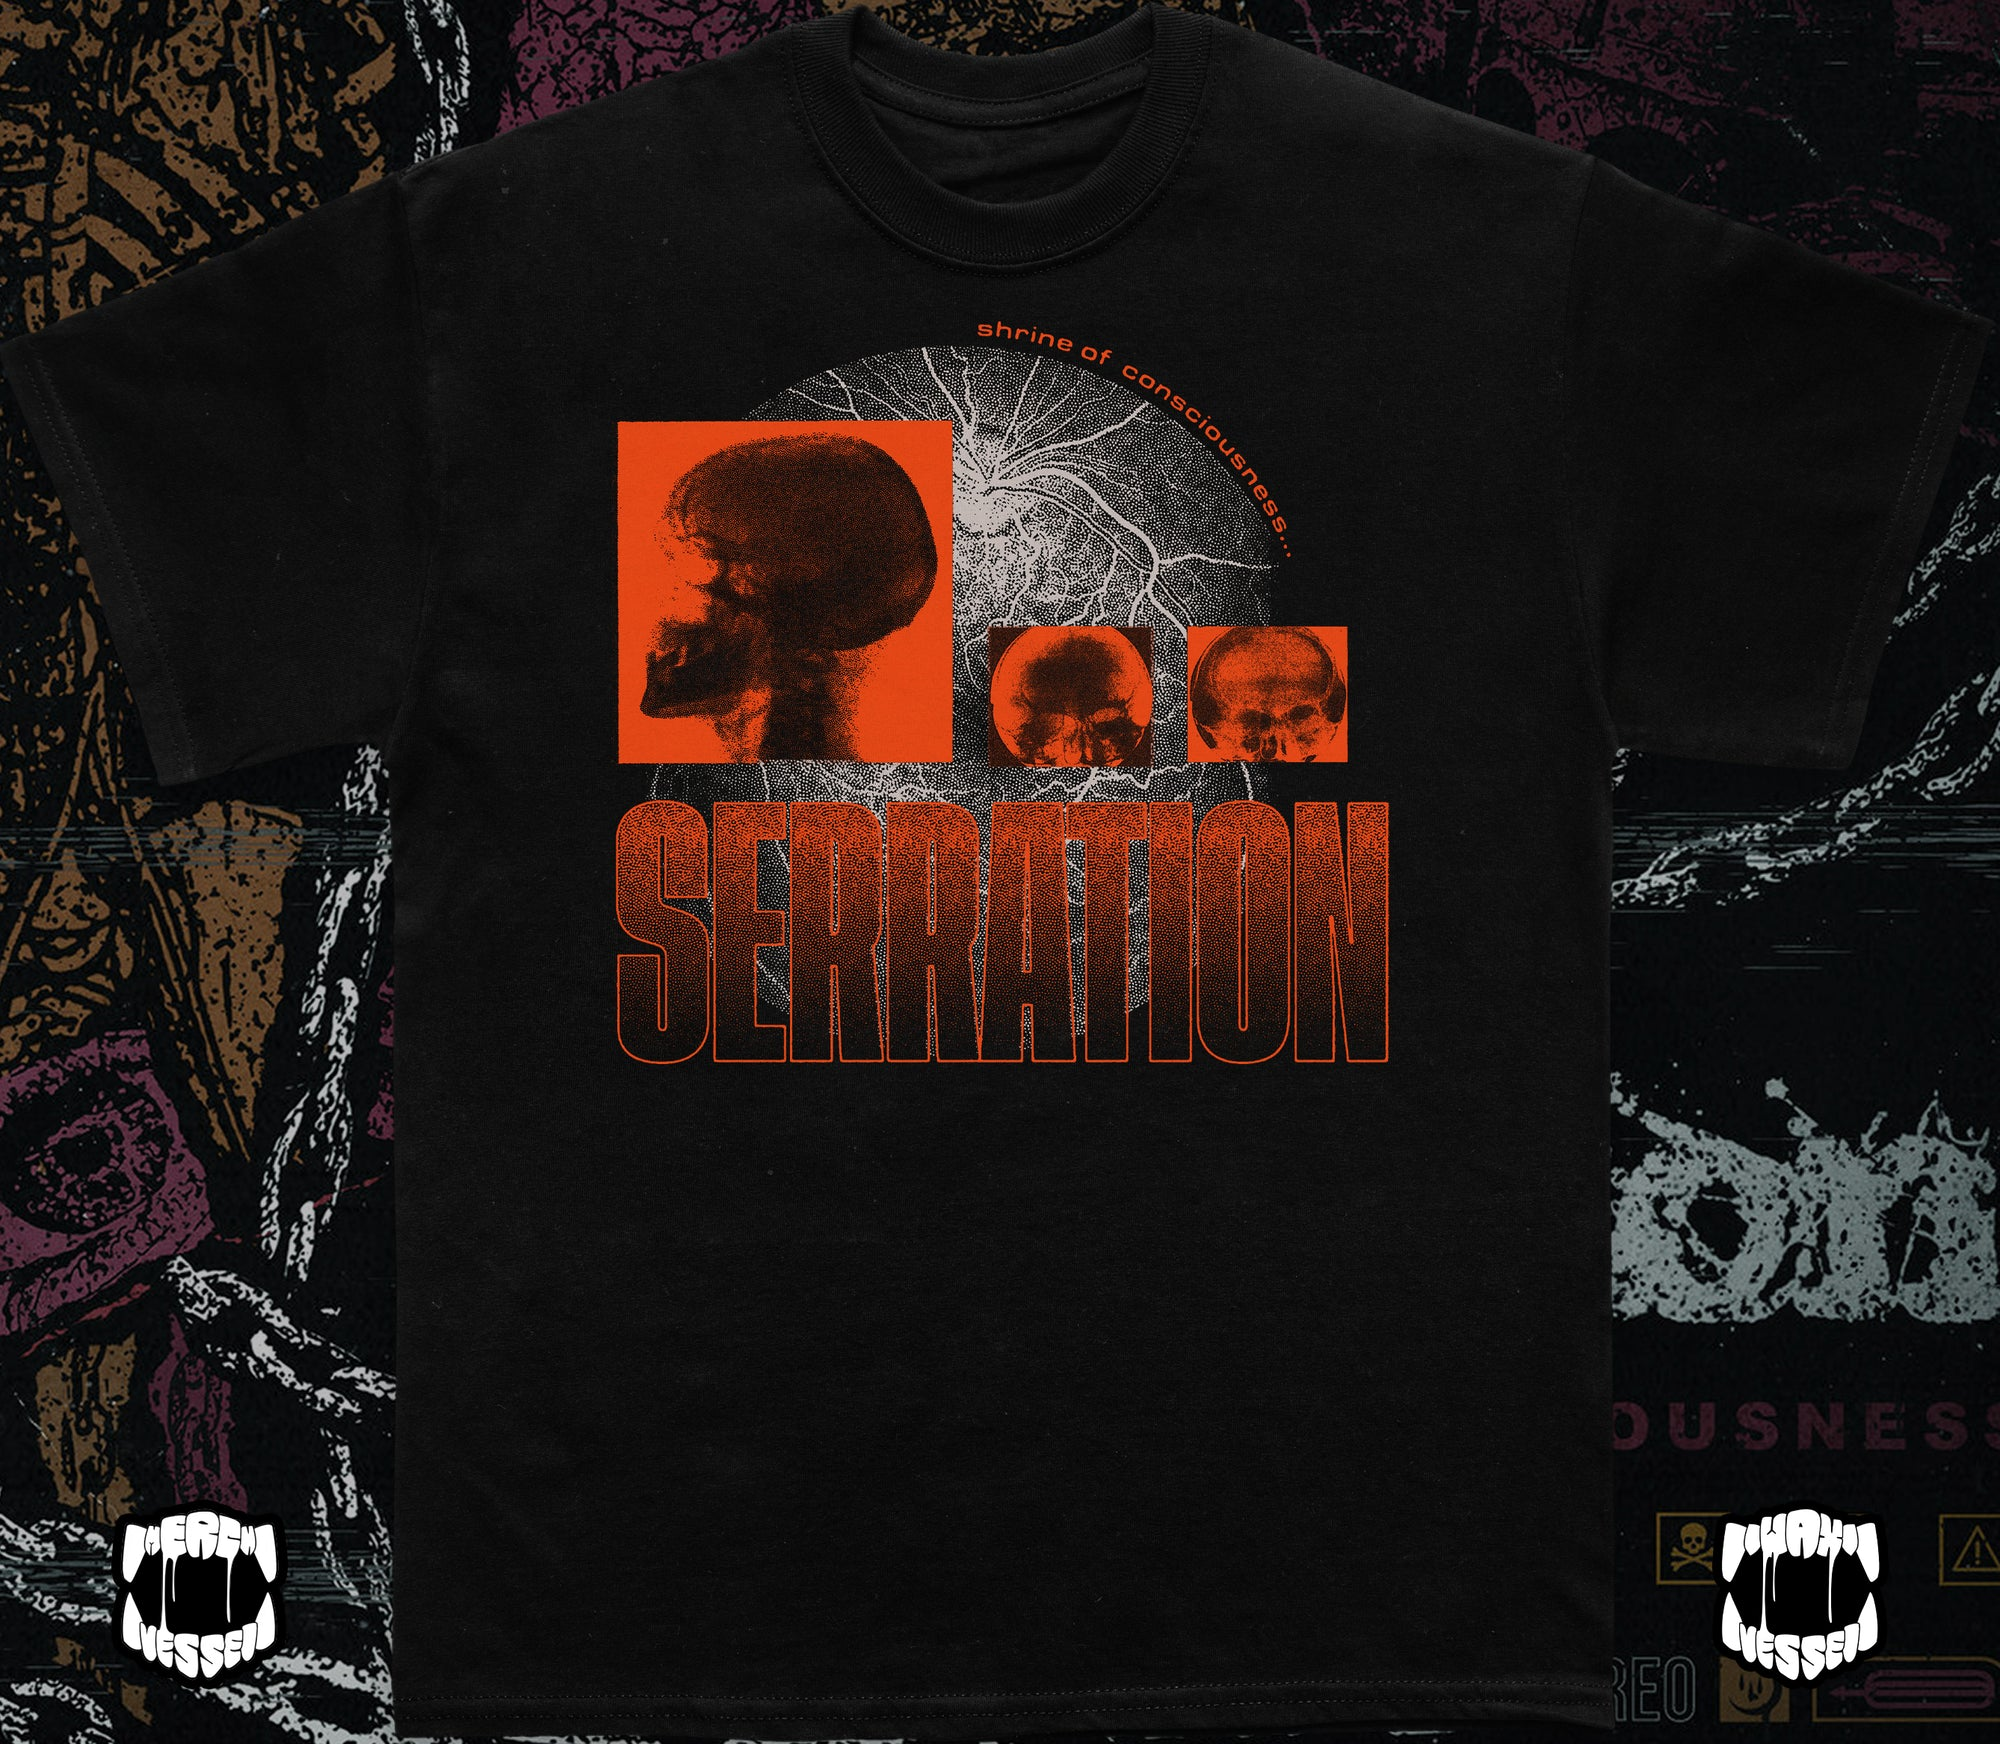 Serration - Consciousness Shirt